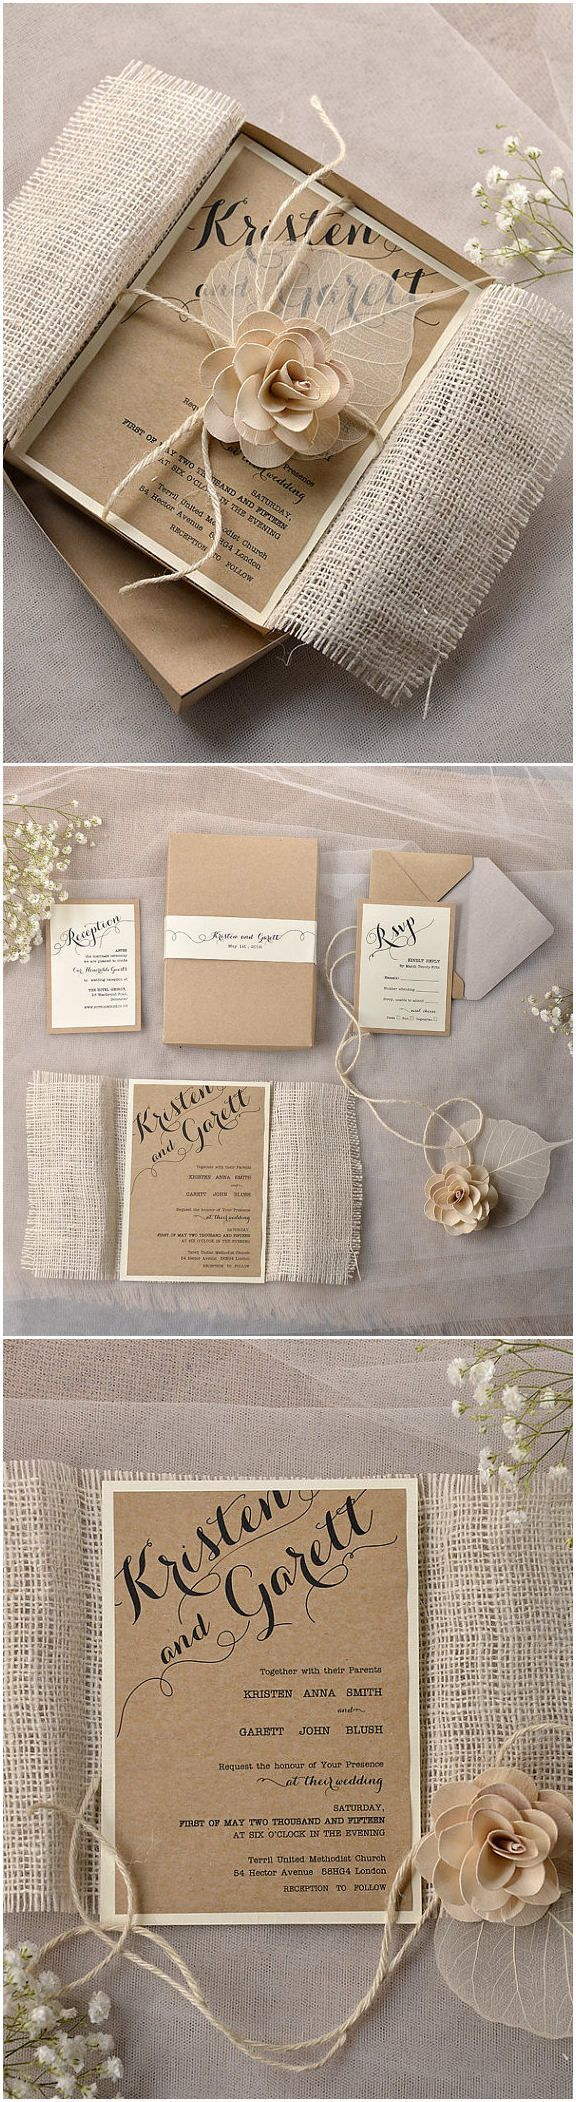 Top 10 Rustic Wedding Invitations to WOW Your Guests | Box wedding ...